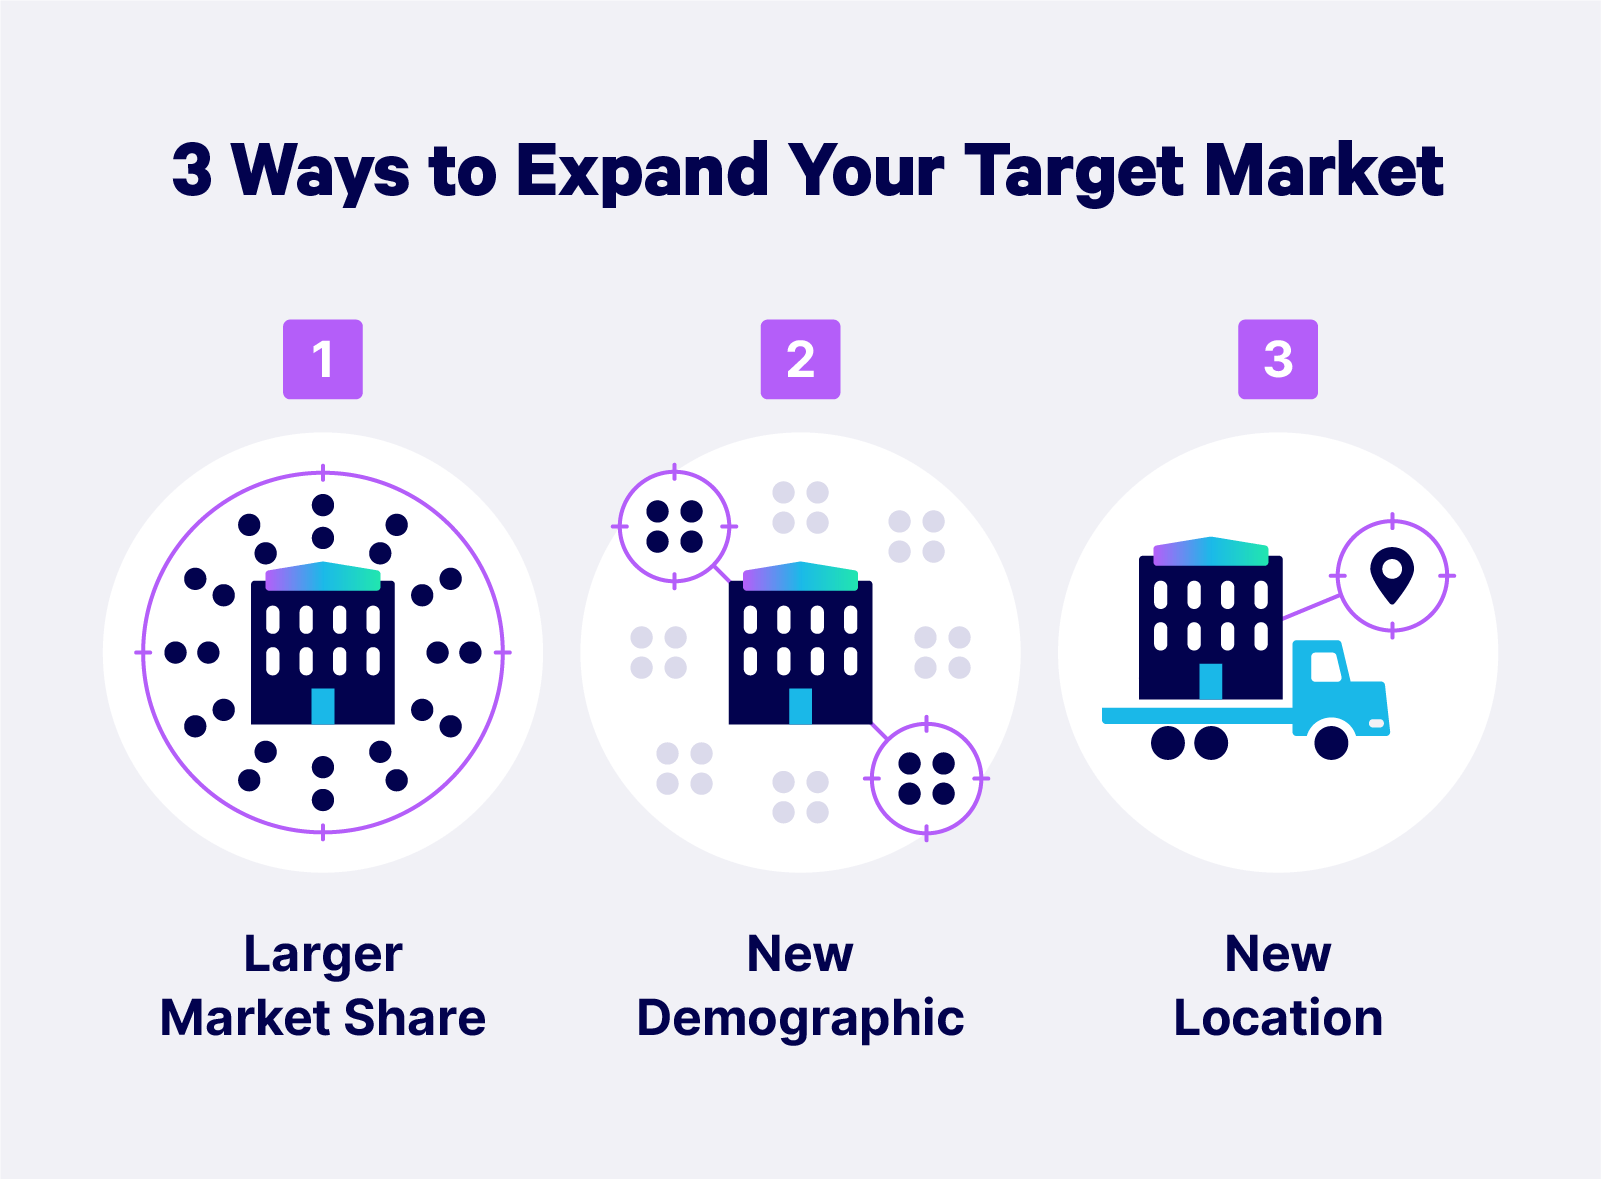 Illustrated graphic listing three ways to expand a target market: larger market share, new demographic, or new location